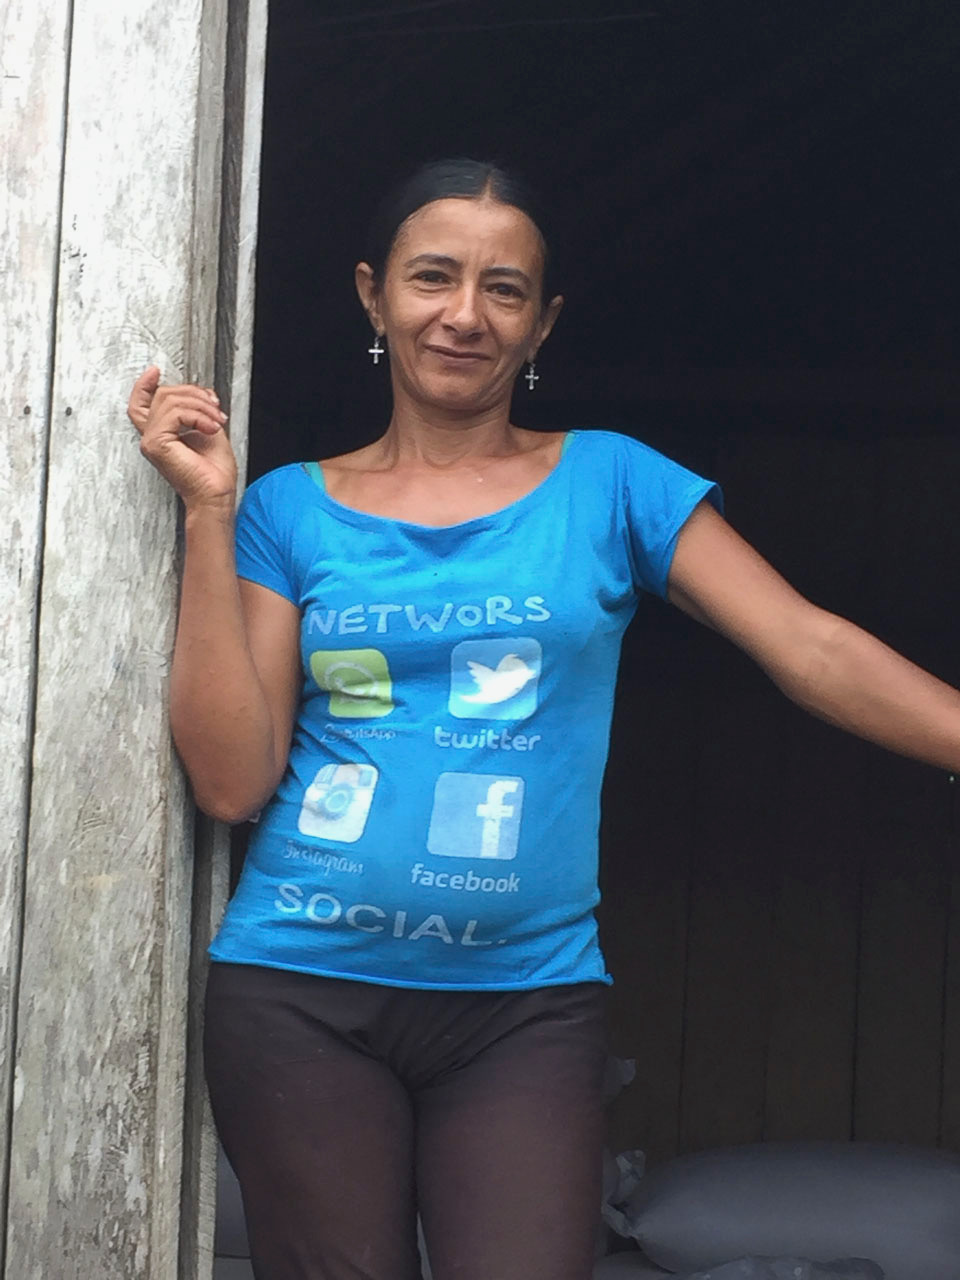 A local community member shows off her tech style in a village with no electricity.